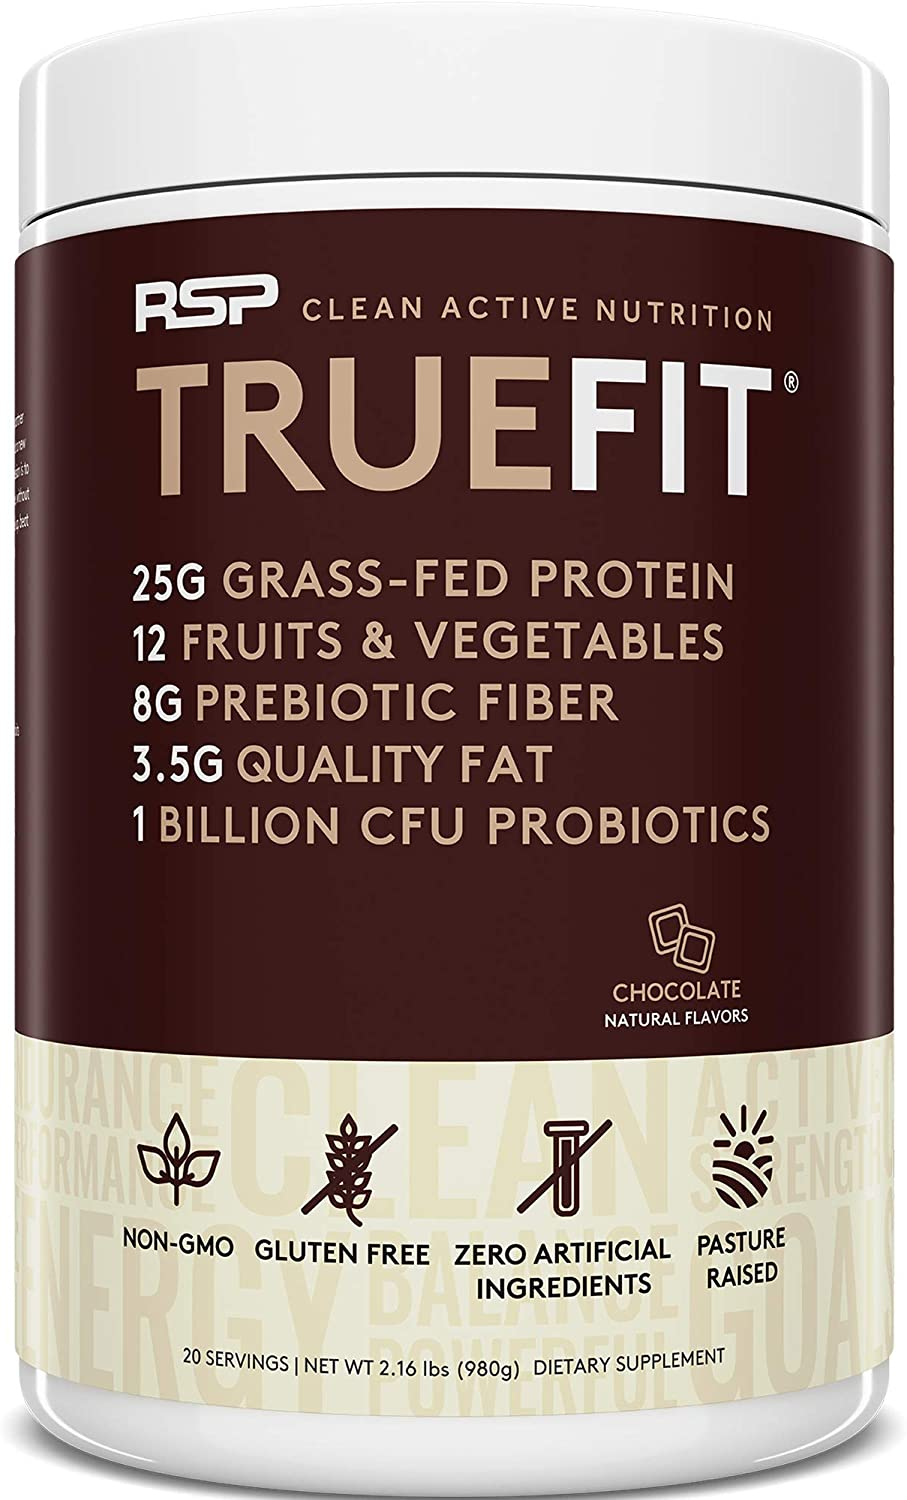 RSP TRUEFIT - Protein Powder Meal Replacement Shake for Weight Loss, Grass Fed Whey, Organic Real Food, Probiotics, MCT Oil, Non-GMO, Gluten Free, No Artificial Sweeteners, 2 LB Chocolate: Health & Personal Care